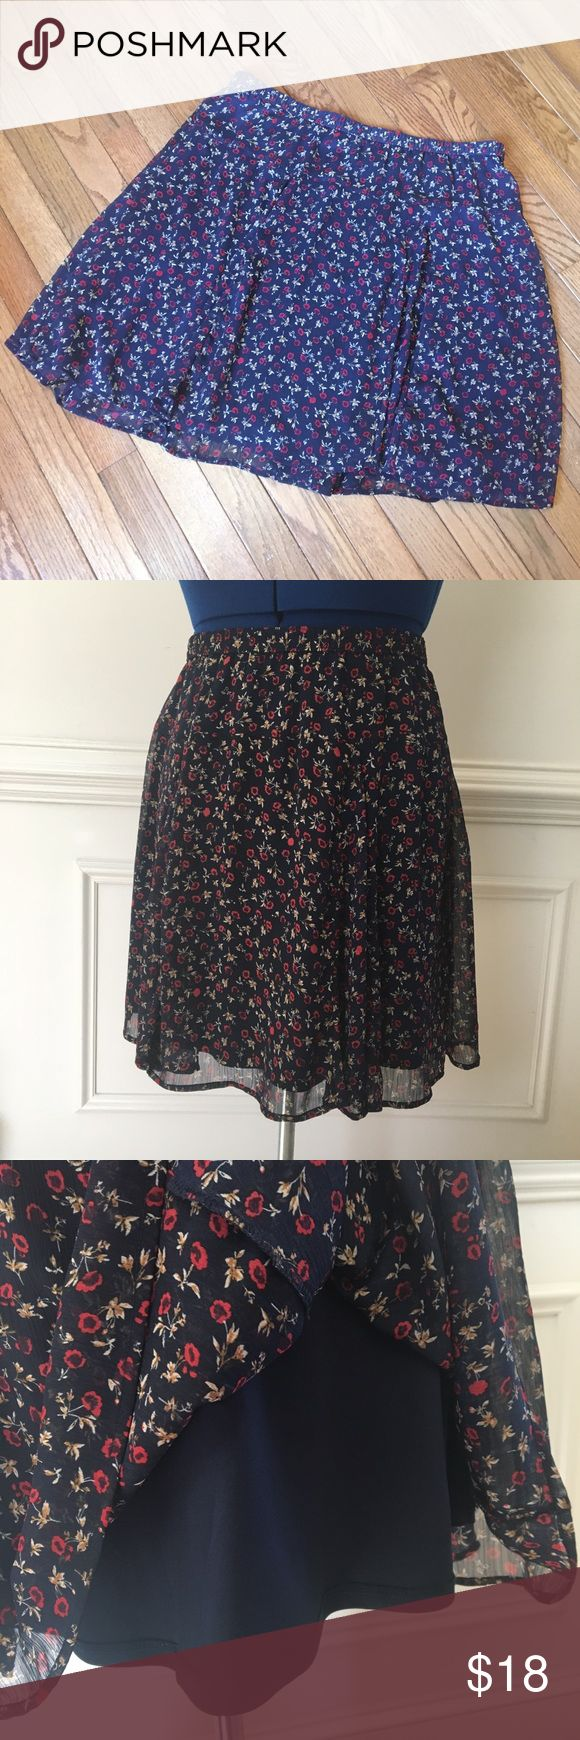 Navy Blue Floral Print Skirt, Old Navy, Large This skirt is frilly, floral, and feminine! Perfect skirt for spring, which is quickly approaching. Pair this with a solid colored blouse for a flirty look.  Red flowers set against a navy blue background.   Features an elastic band for a comfortable fit, and a navy blue lining.   Gently used, in excellent condition! Old Navy Skirts